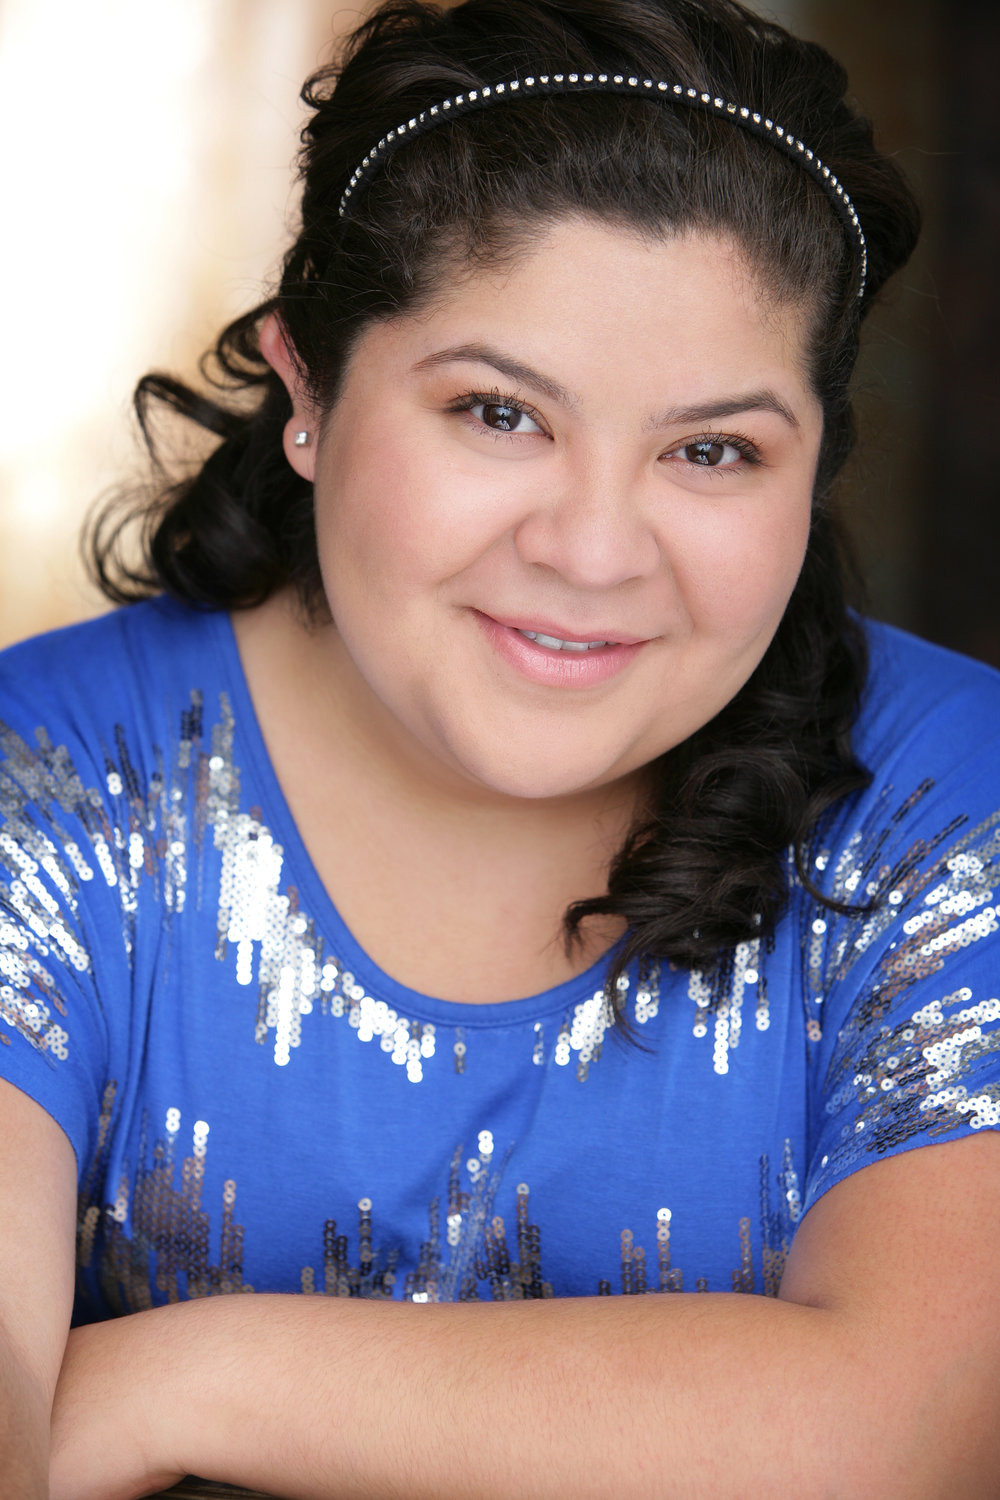 Raini Rodriguez headshot by Shandon Photography